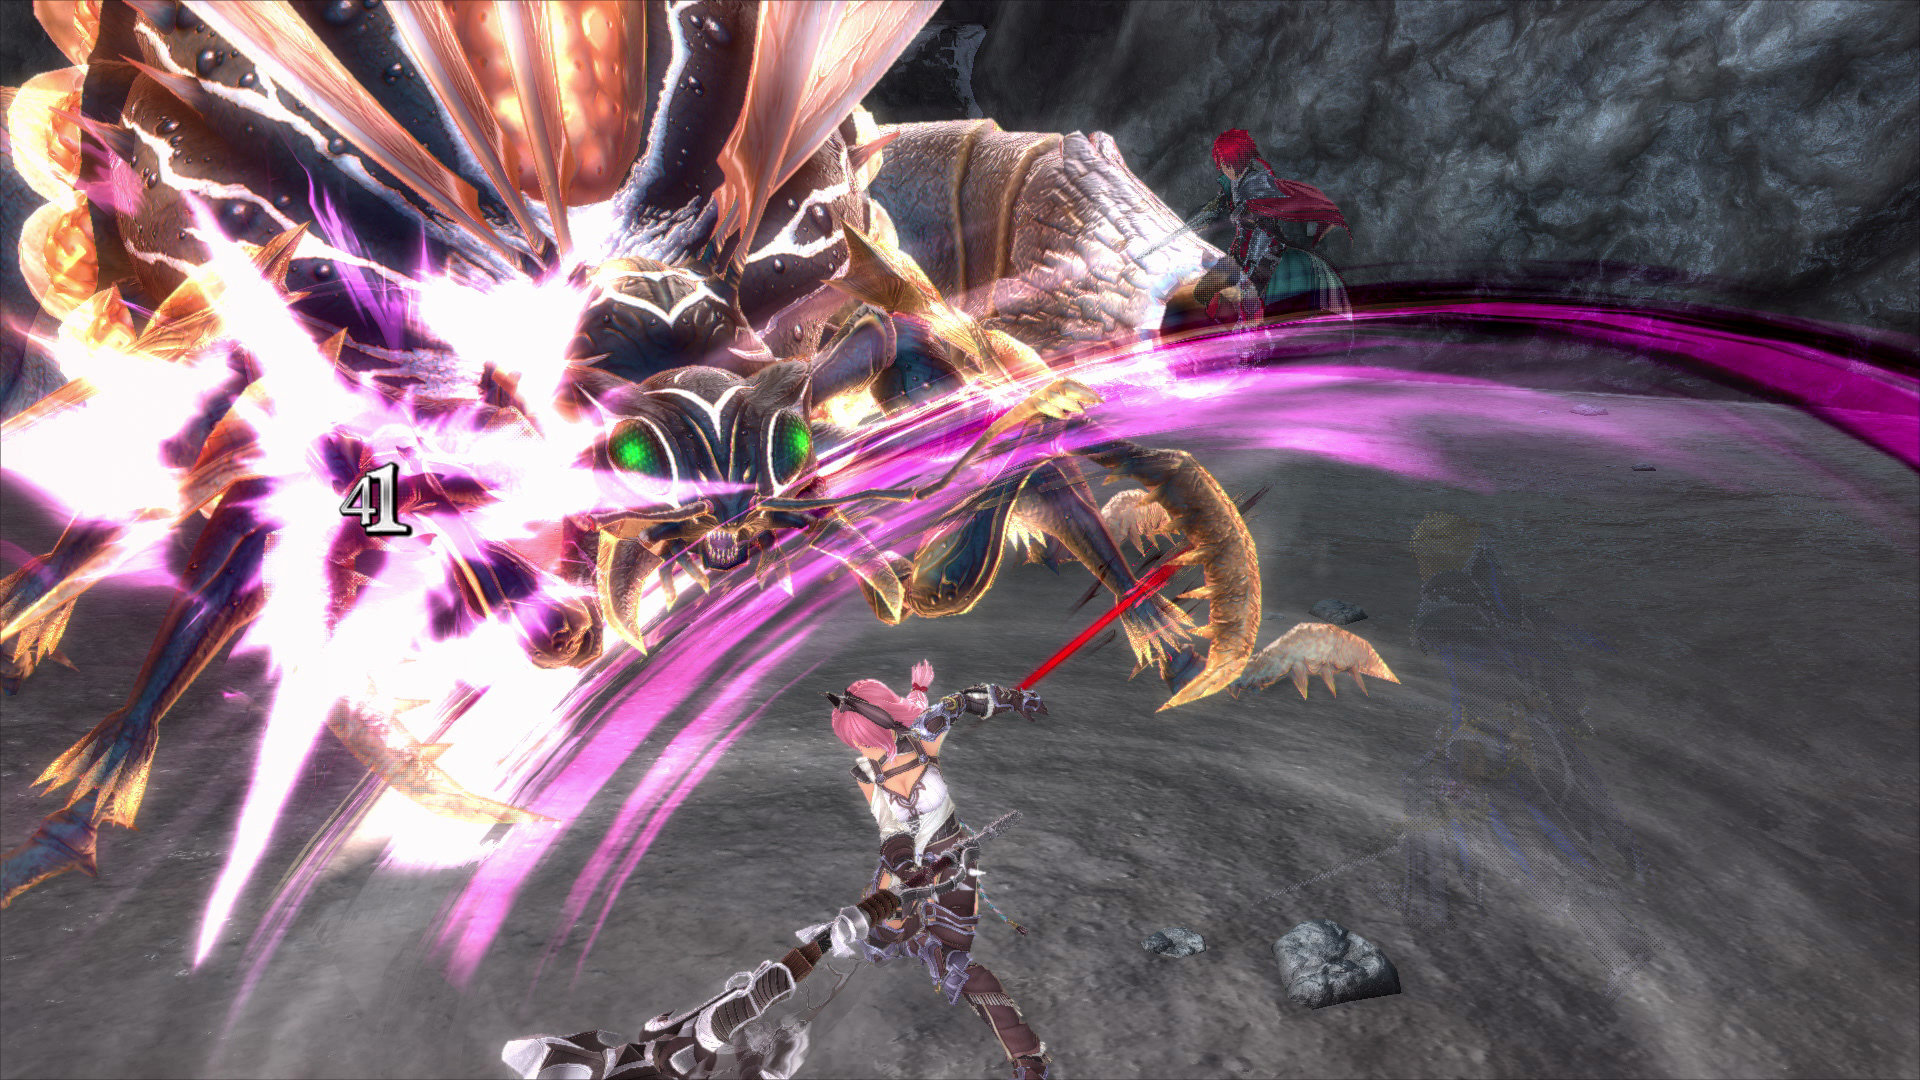 Ys IX: Monstrum Nox screenshot of a pink-haired character striking a large bug/bear monster with a purple trail of light.